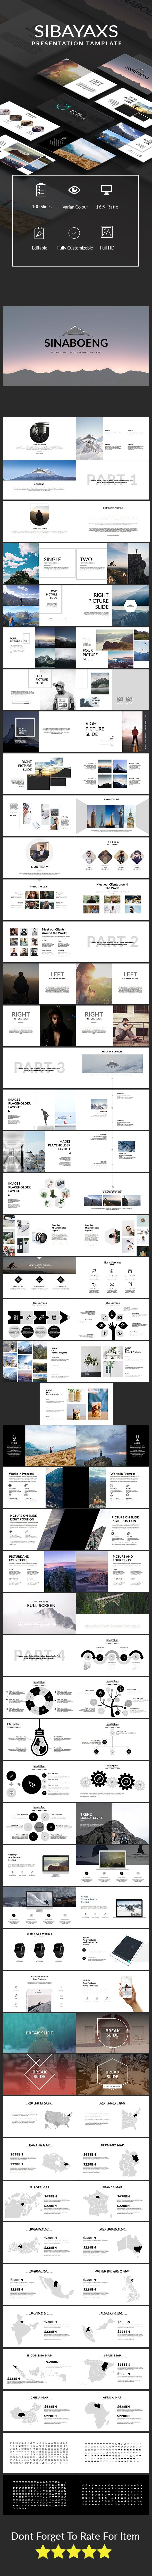 #Sibayak #Multipurpose #Powerpoint - PowerPoint #Templates #Presentation #Templates Download here: https://graphicriver.net/item/sibayak-multipurpose-powerpoint/19178627?ref=alena994